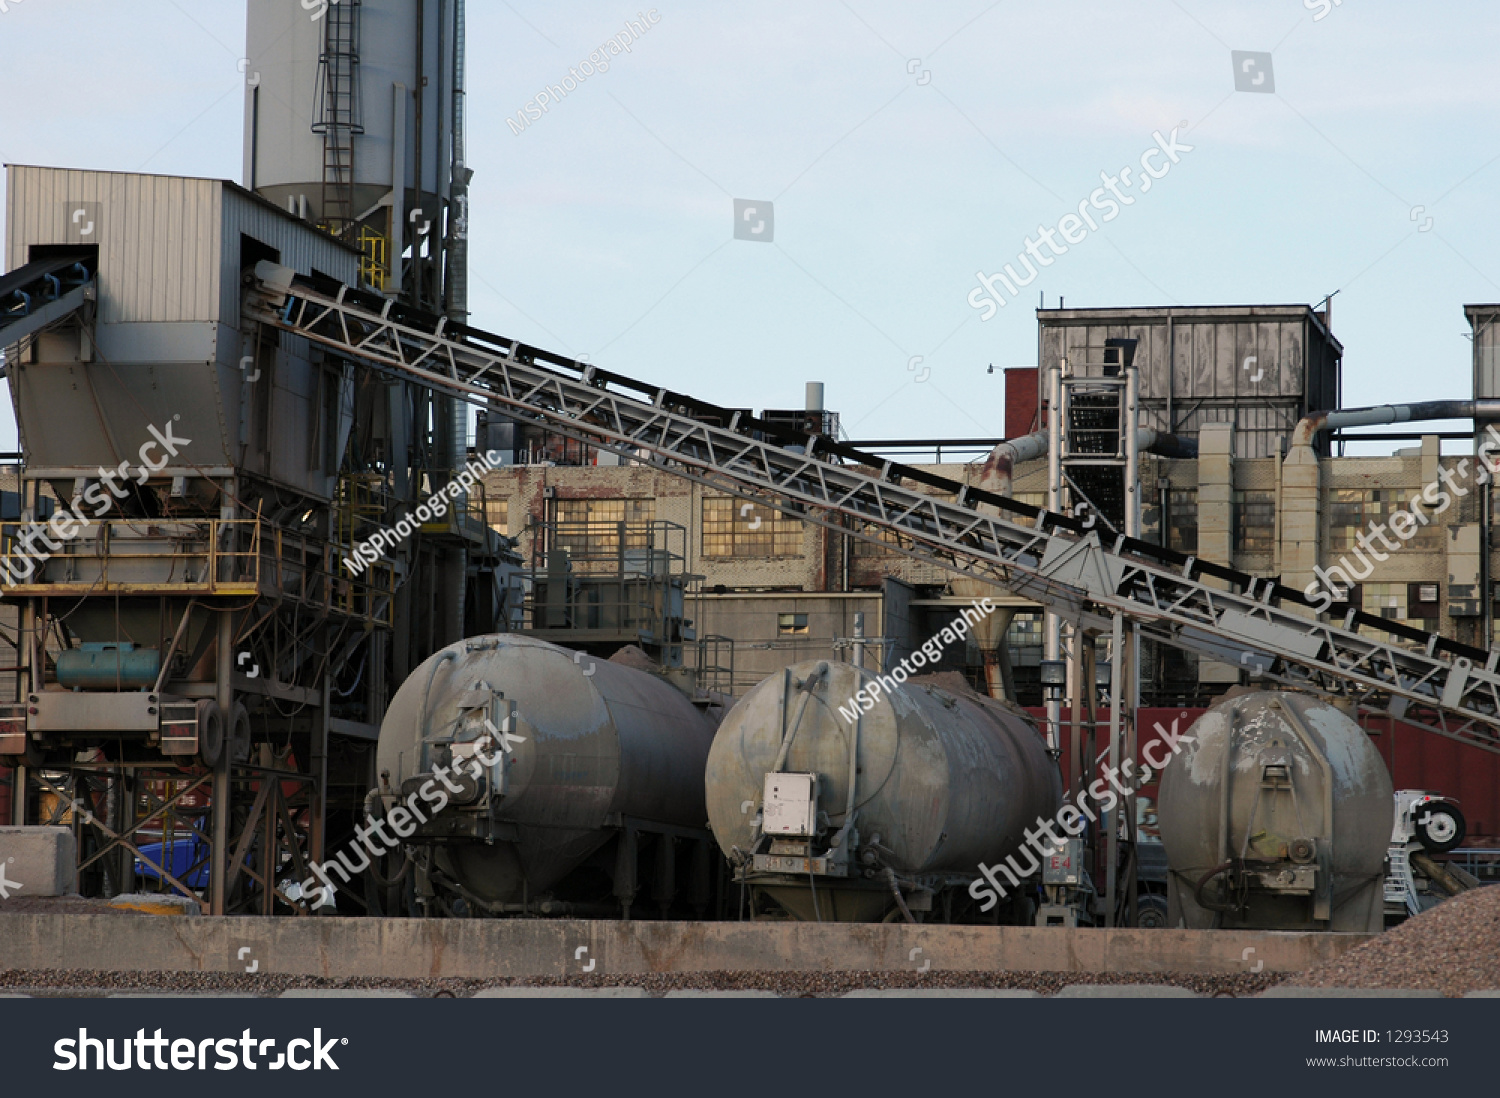 Cement Manufacturing Plants : Cement plant abandoned manufacturing background